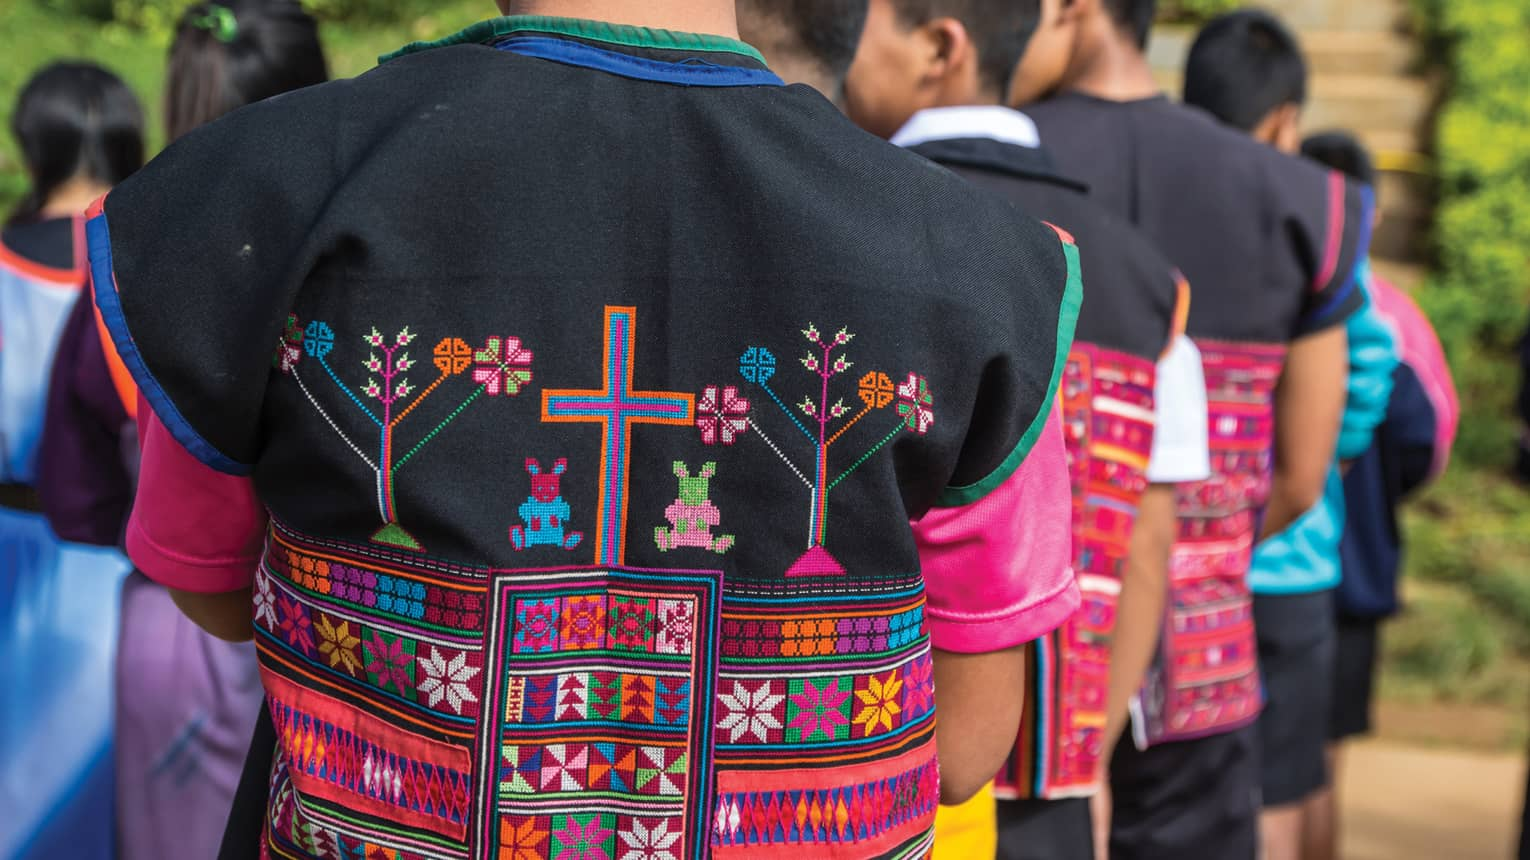 Close-up of colourful textiles on clothing made by hill tribes